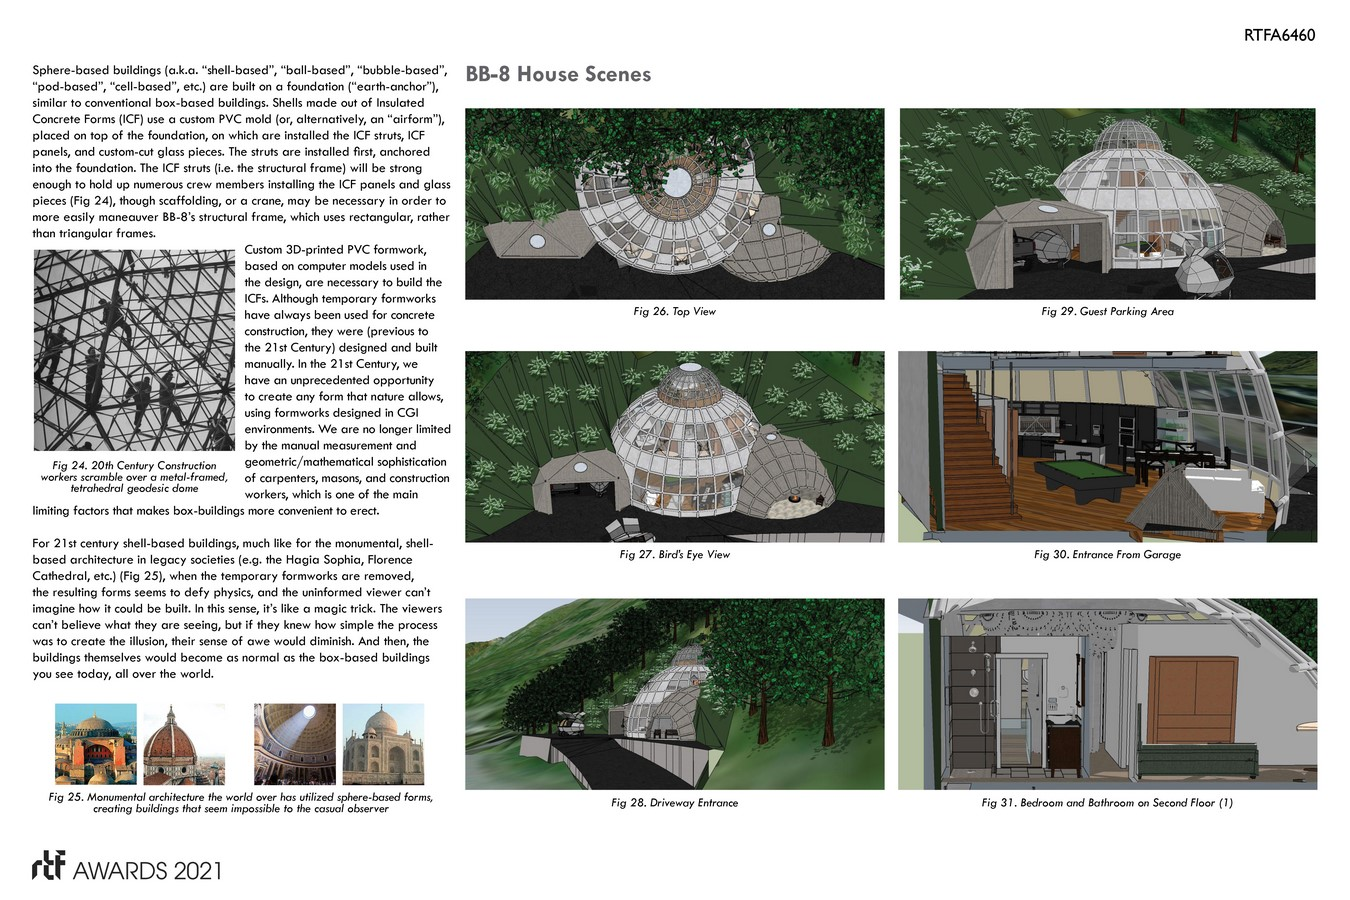 The BB-8 House By Primary Design Co. - Sheet5